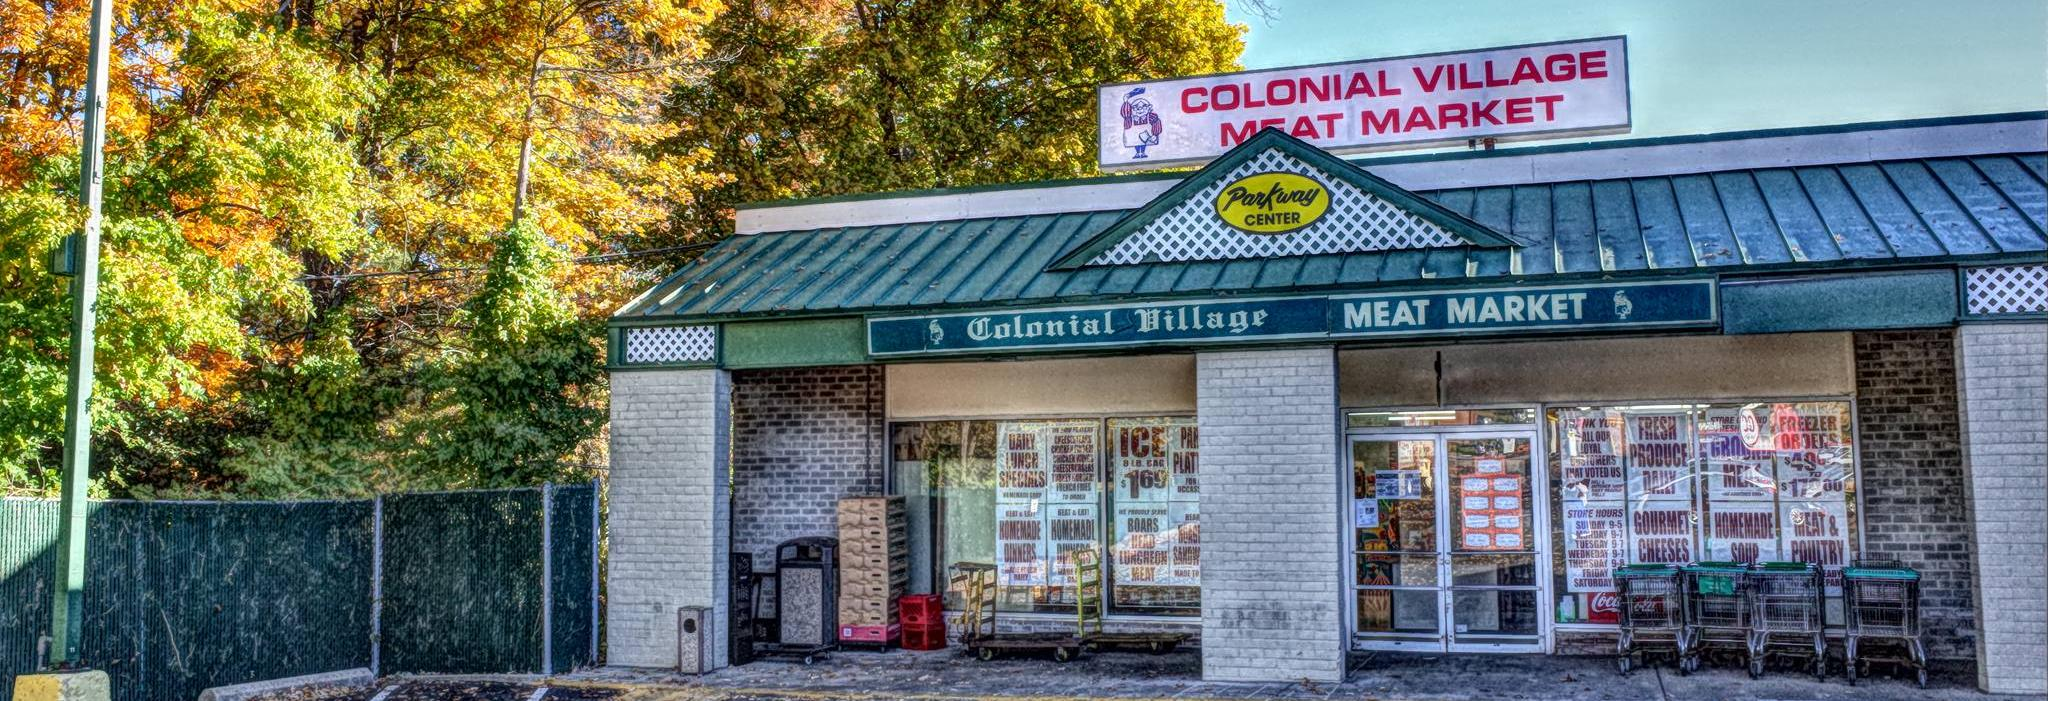 colonial village meat market, deli, meat, west chester, meat in west chester